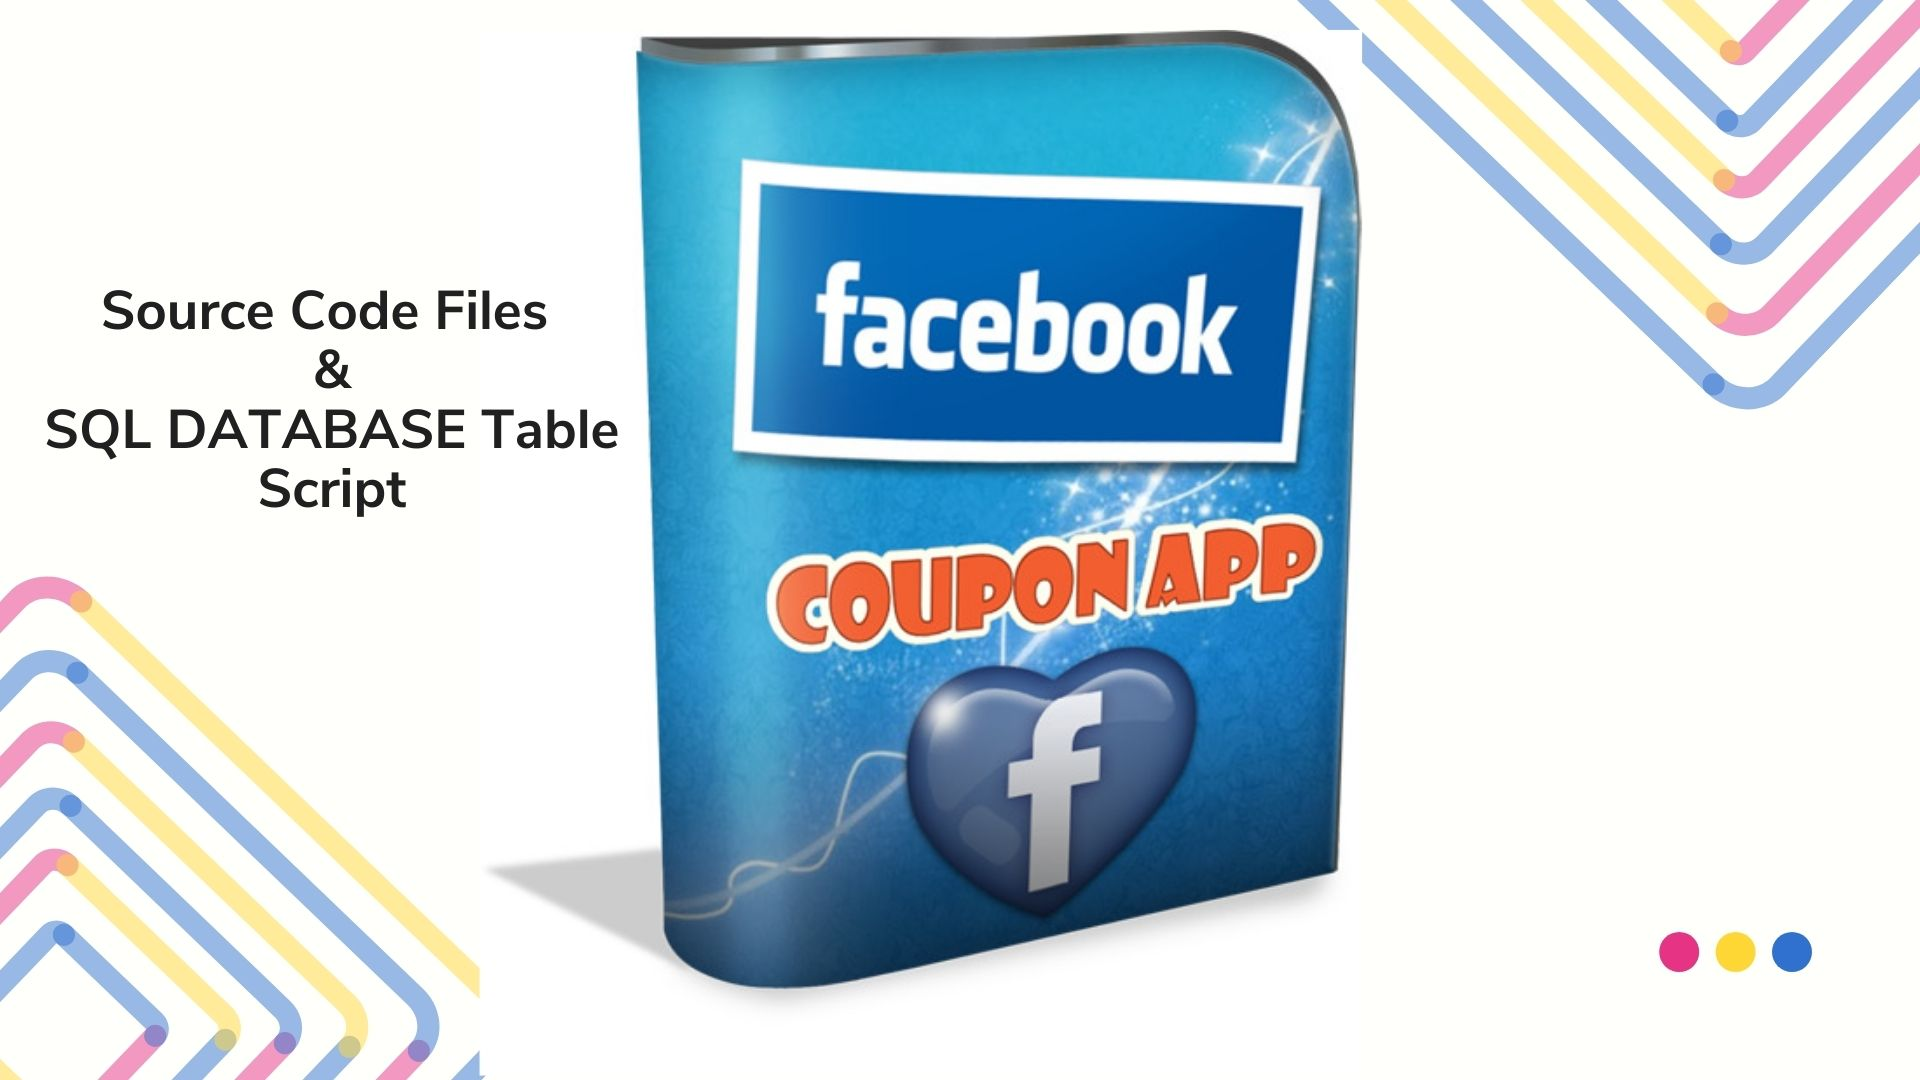 Fb app with Source Code Files and SQL Databse Table Script